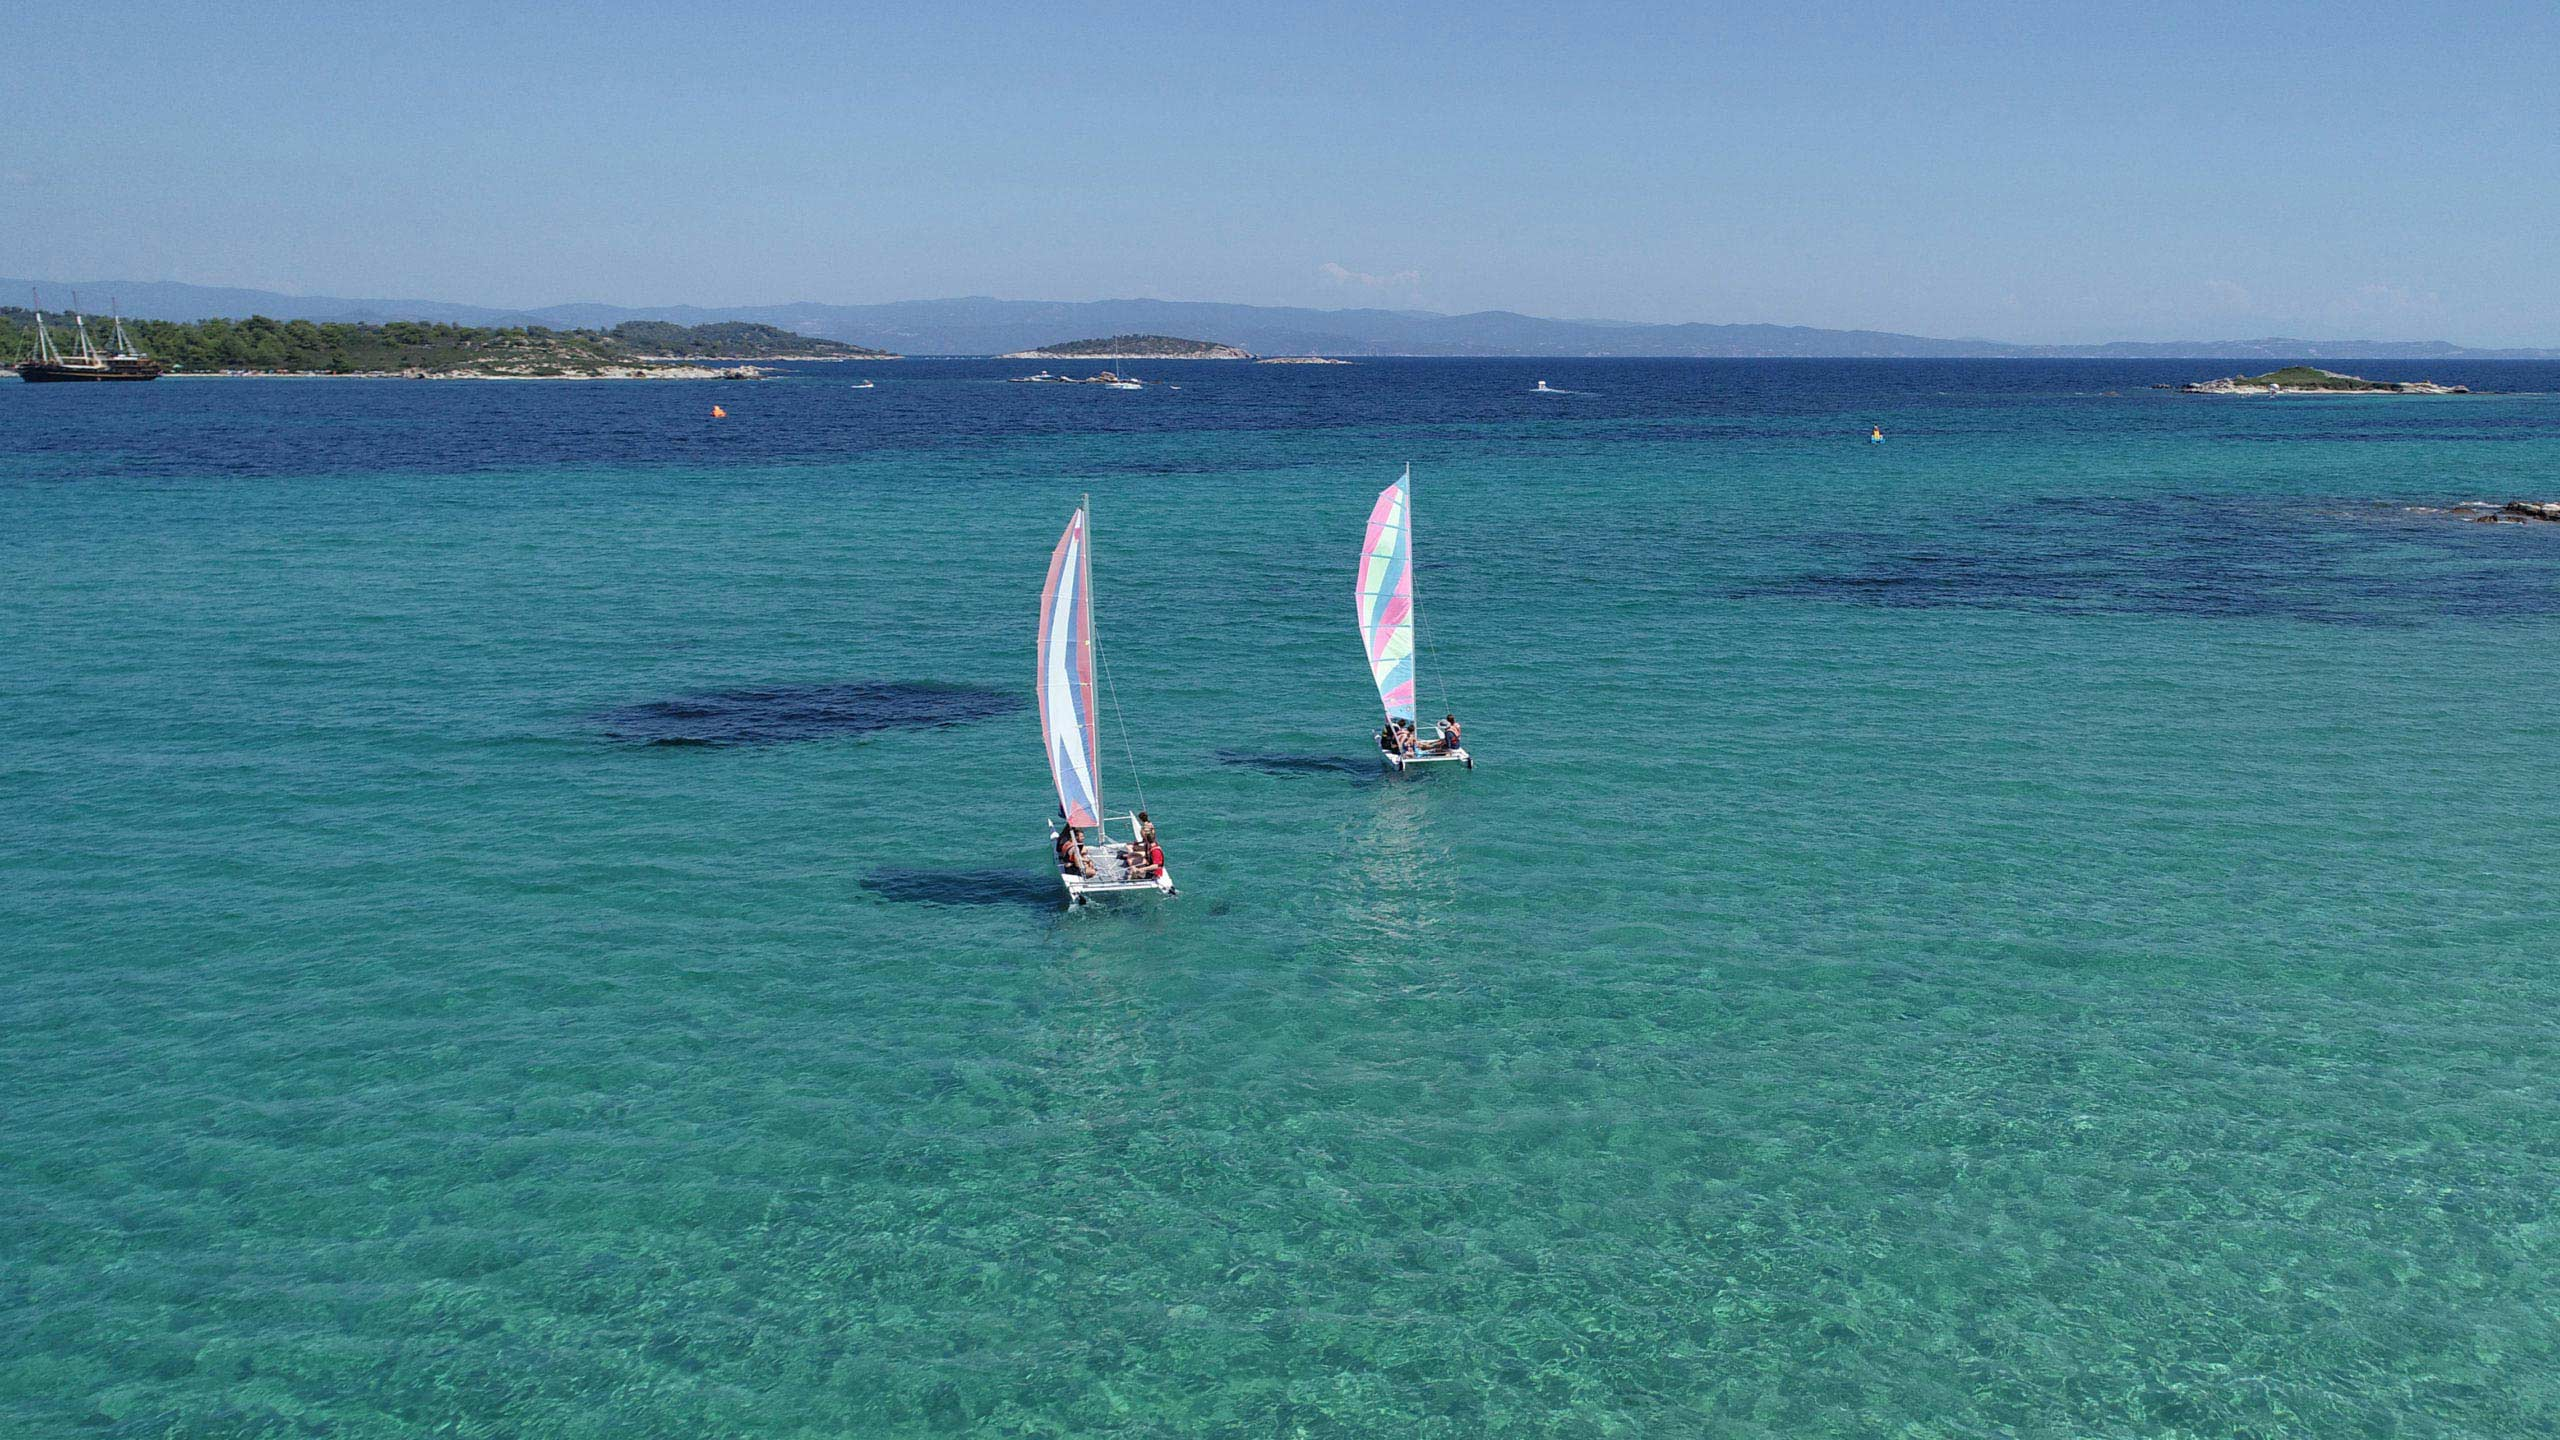 Two catamarans in the open sea